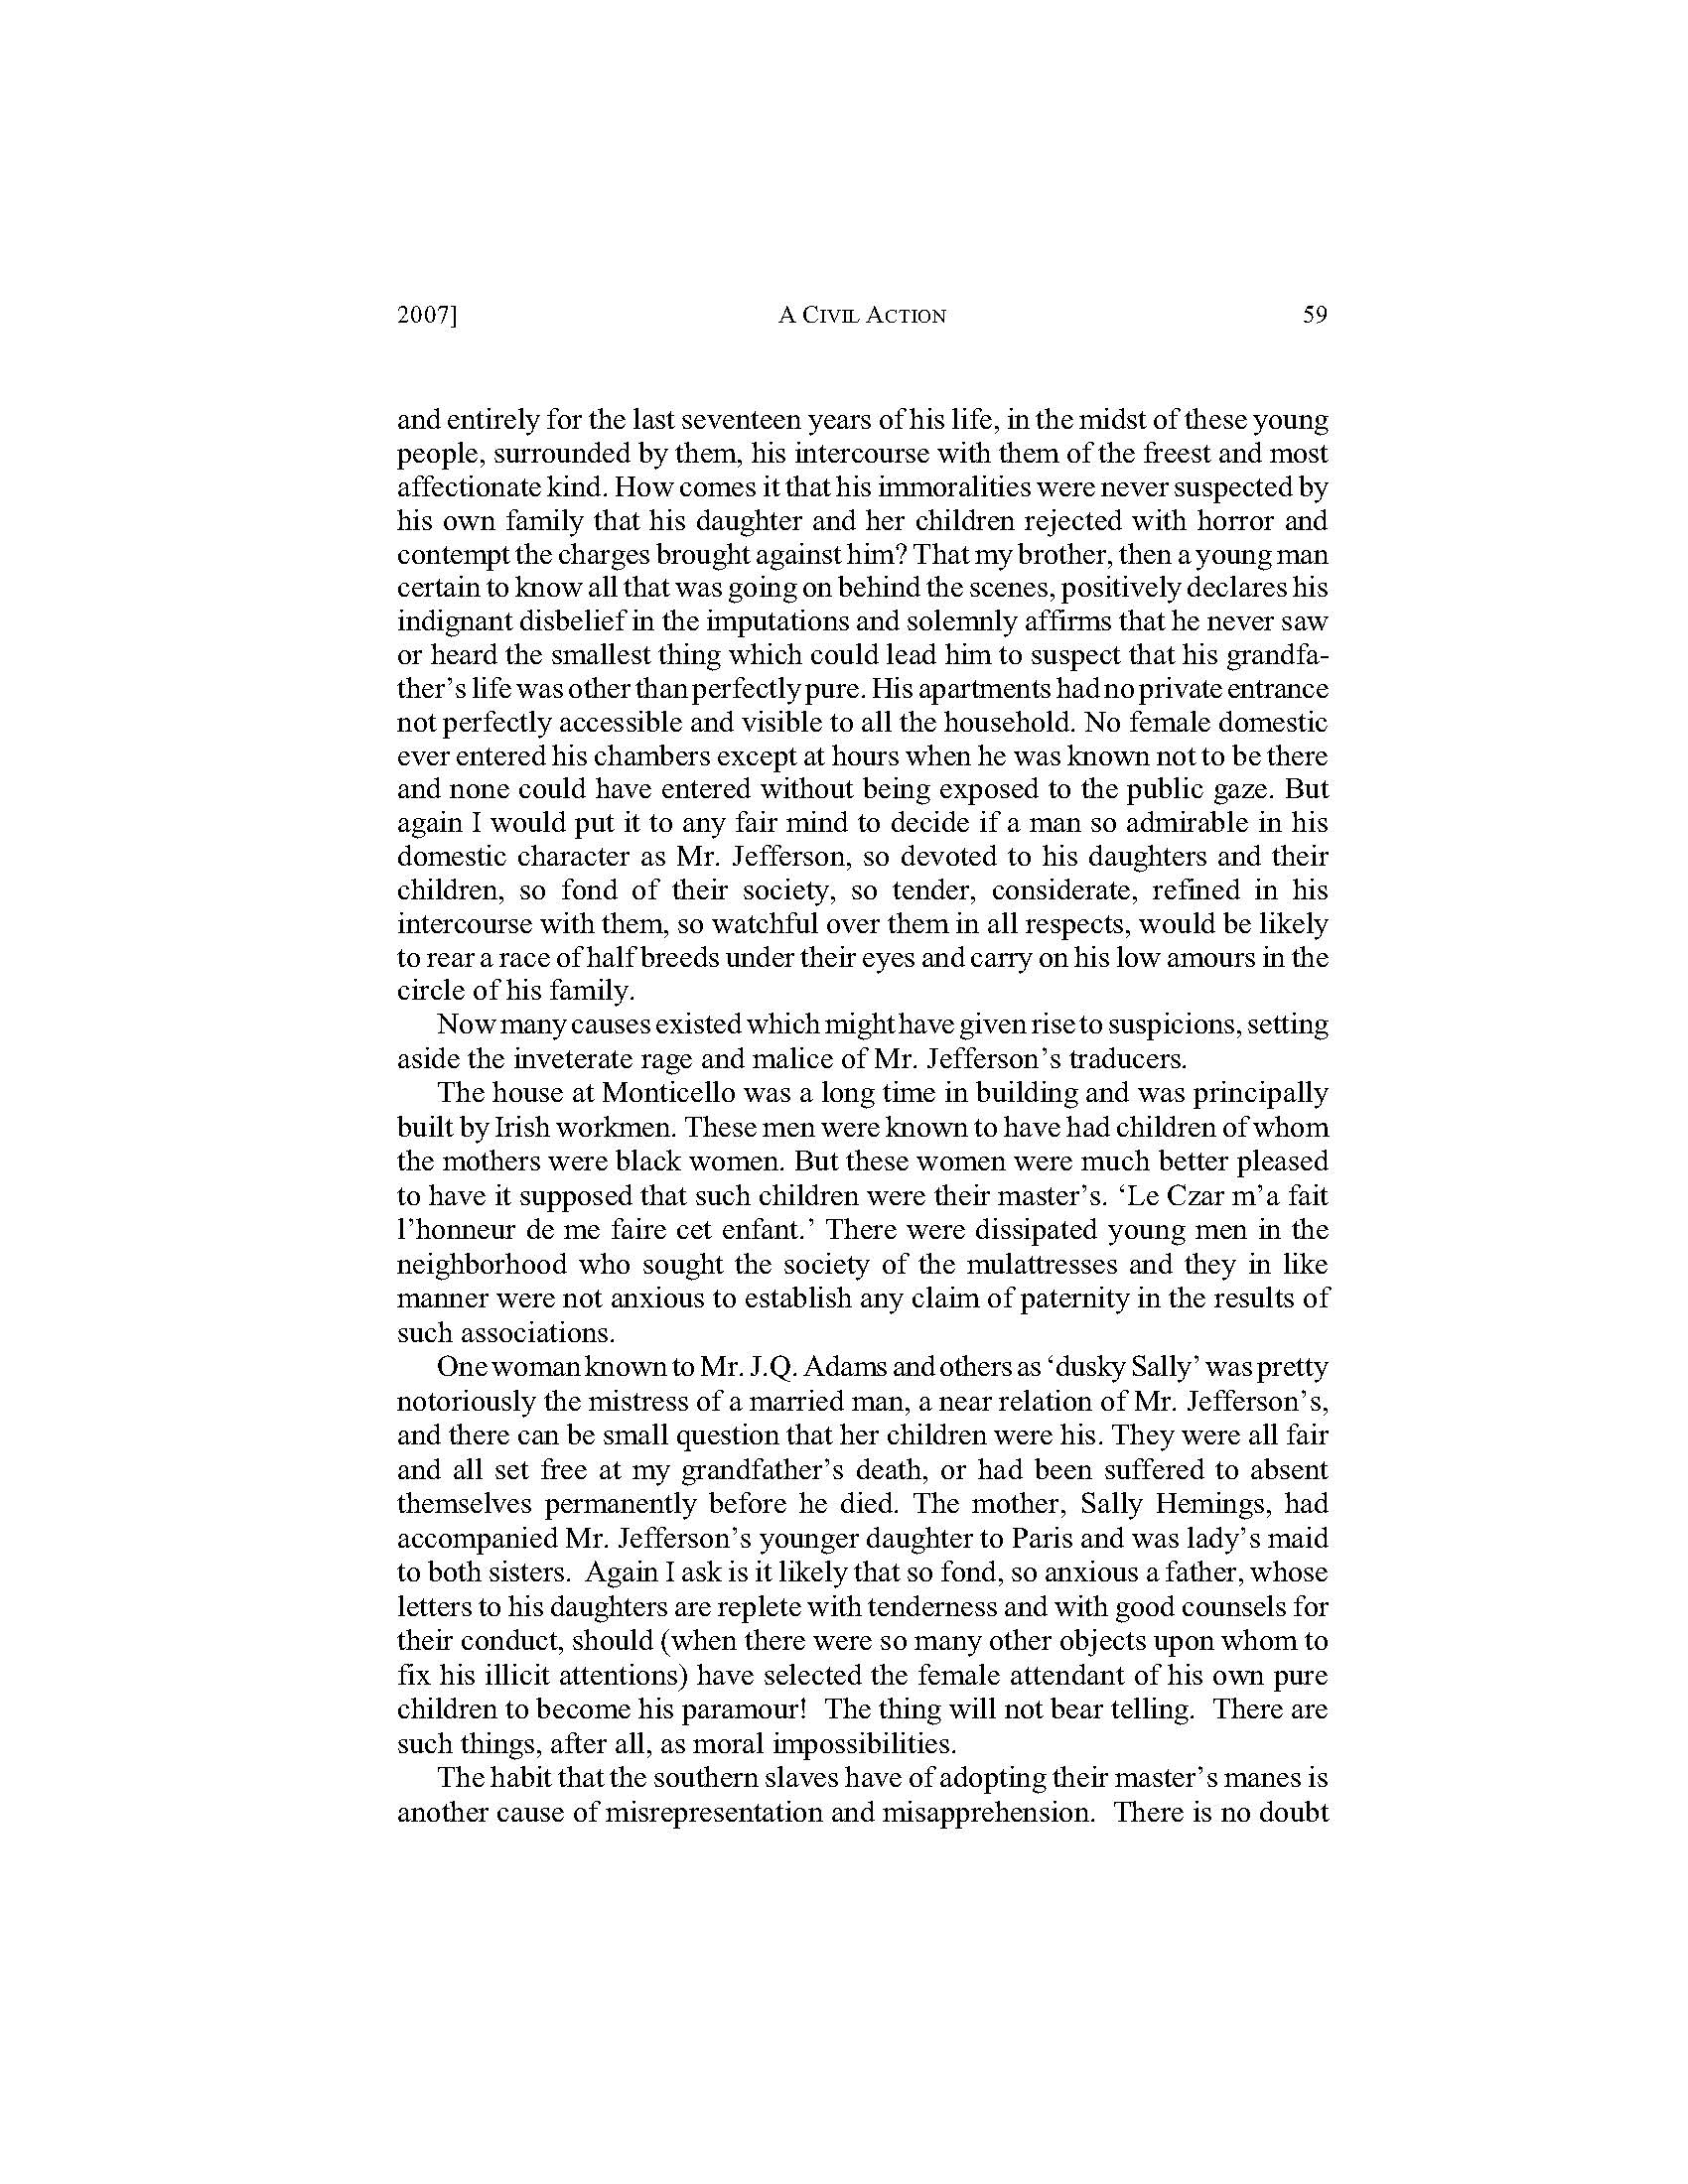 A Civil Action_Page_59.jpg